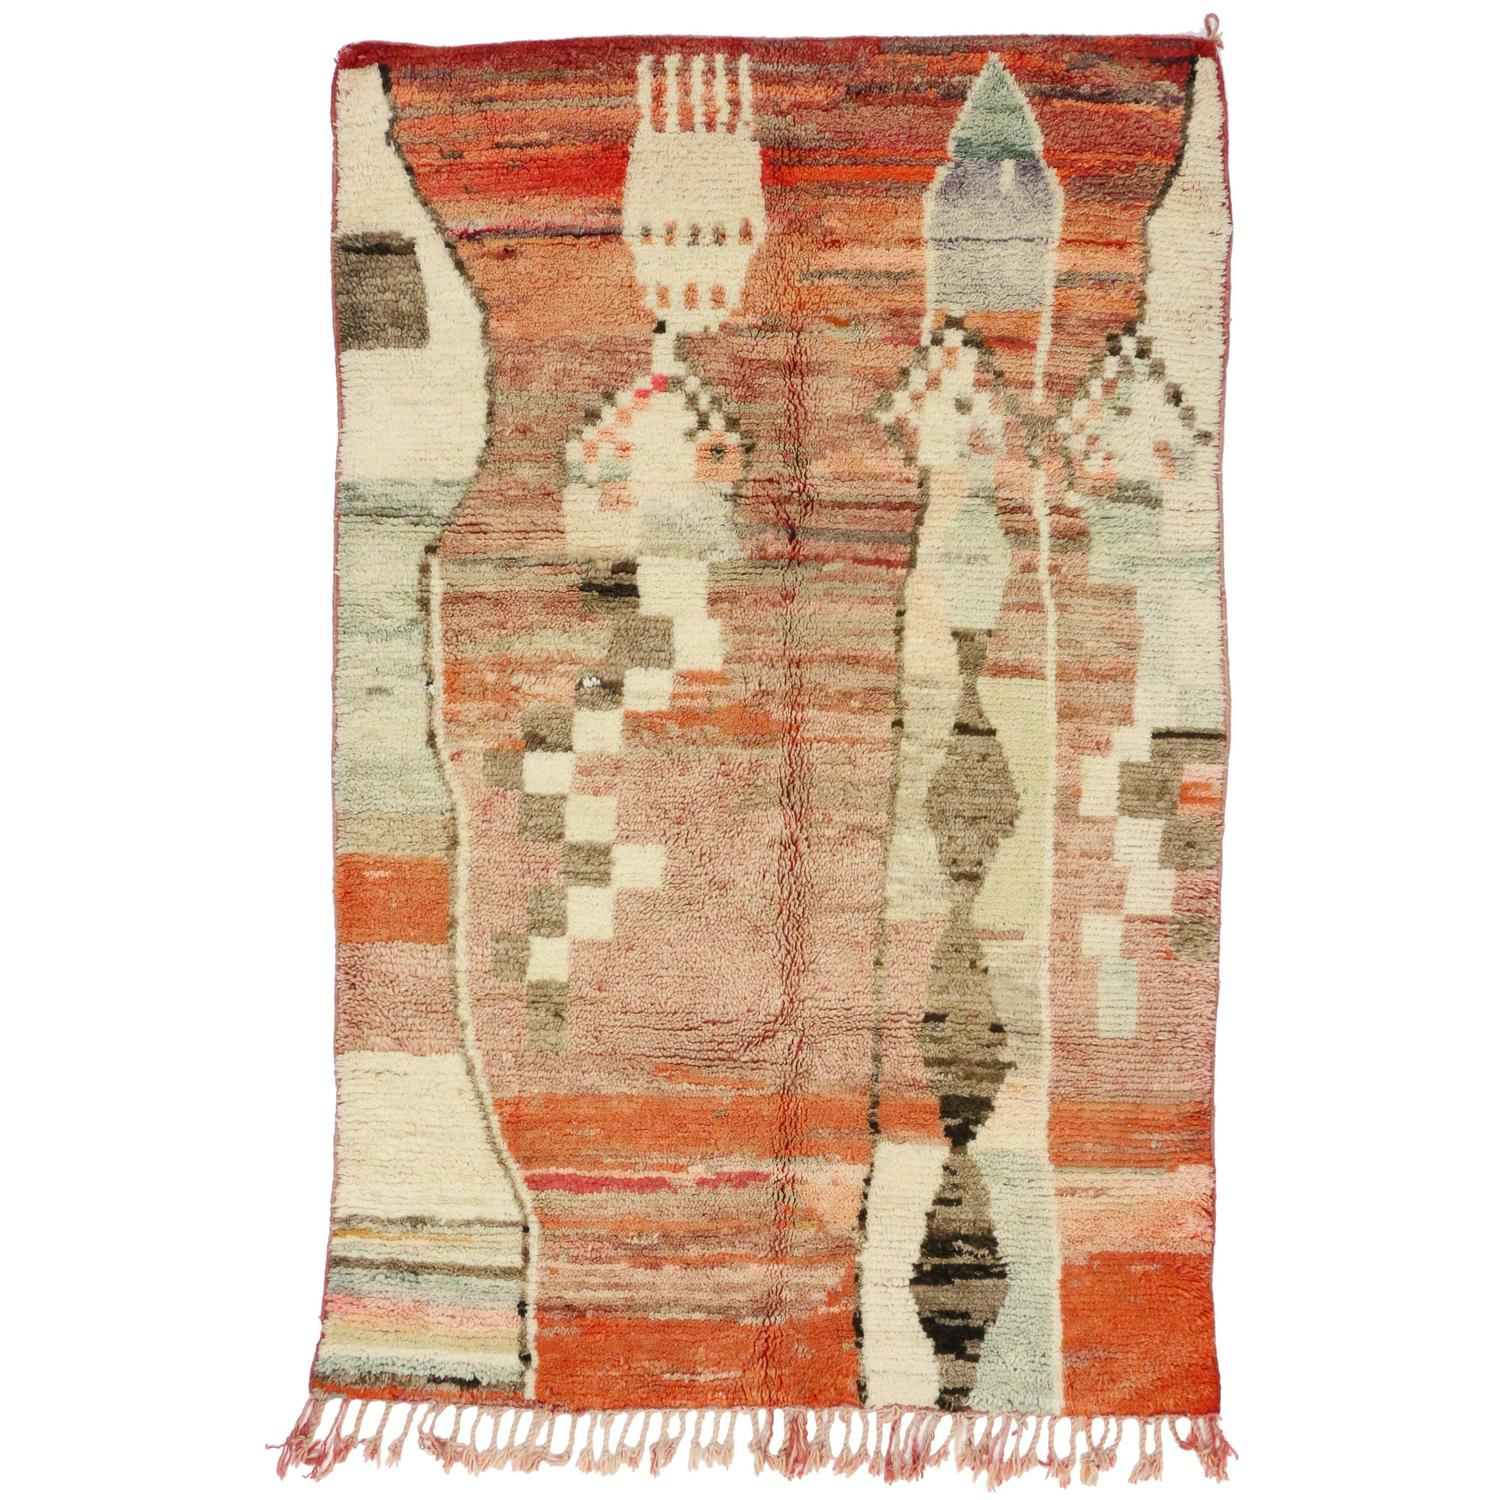 Berber Moroccan Rug With Art Deco Design At 1stdibs